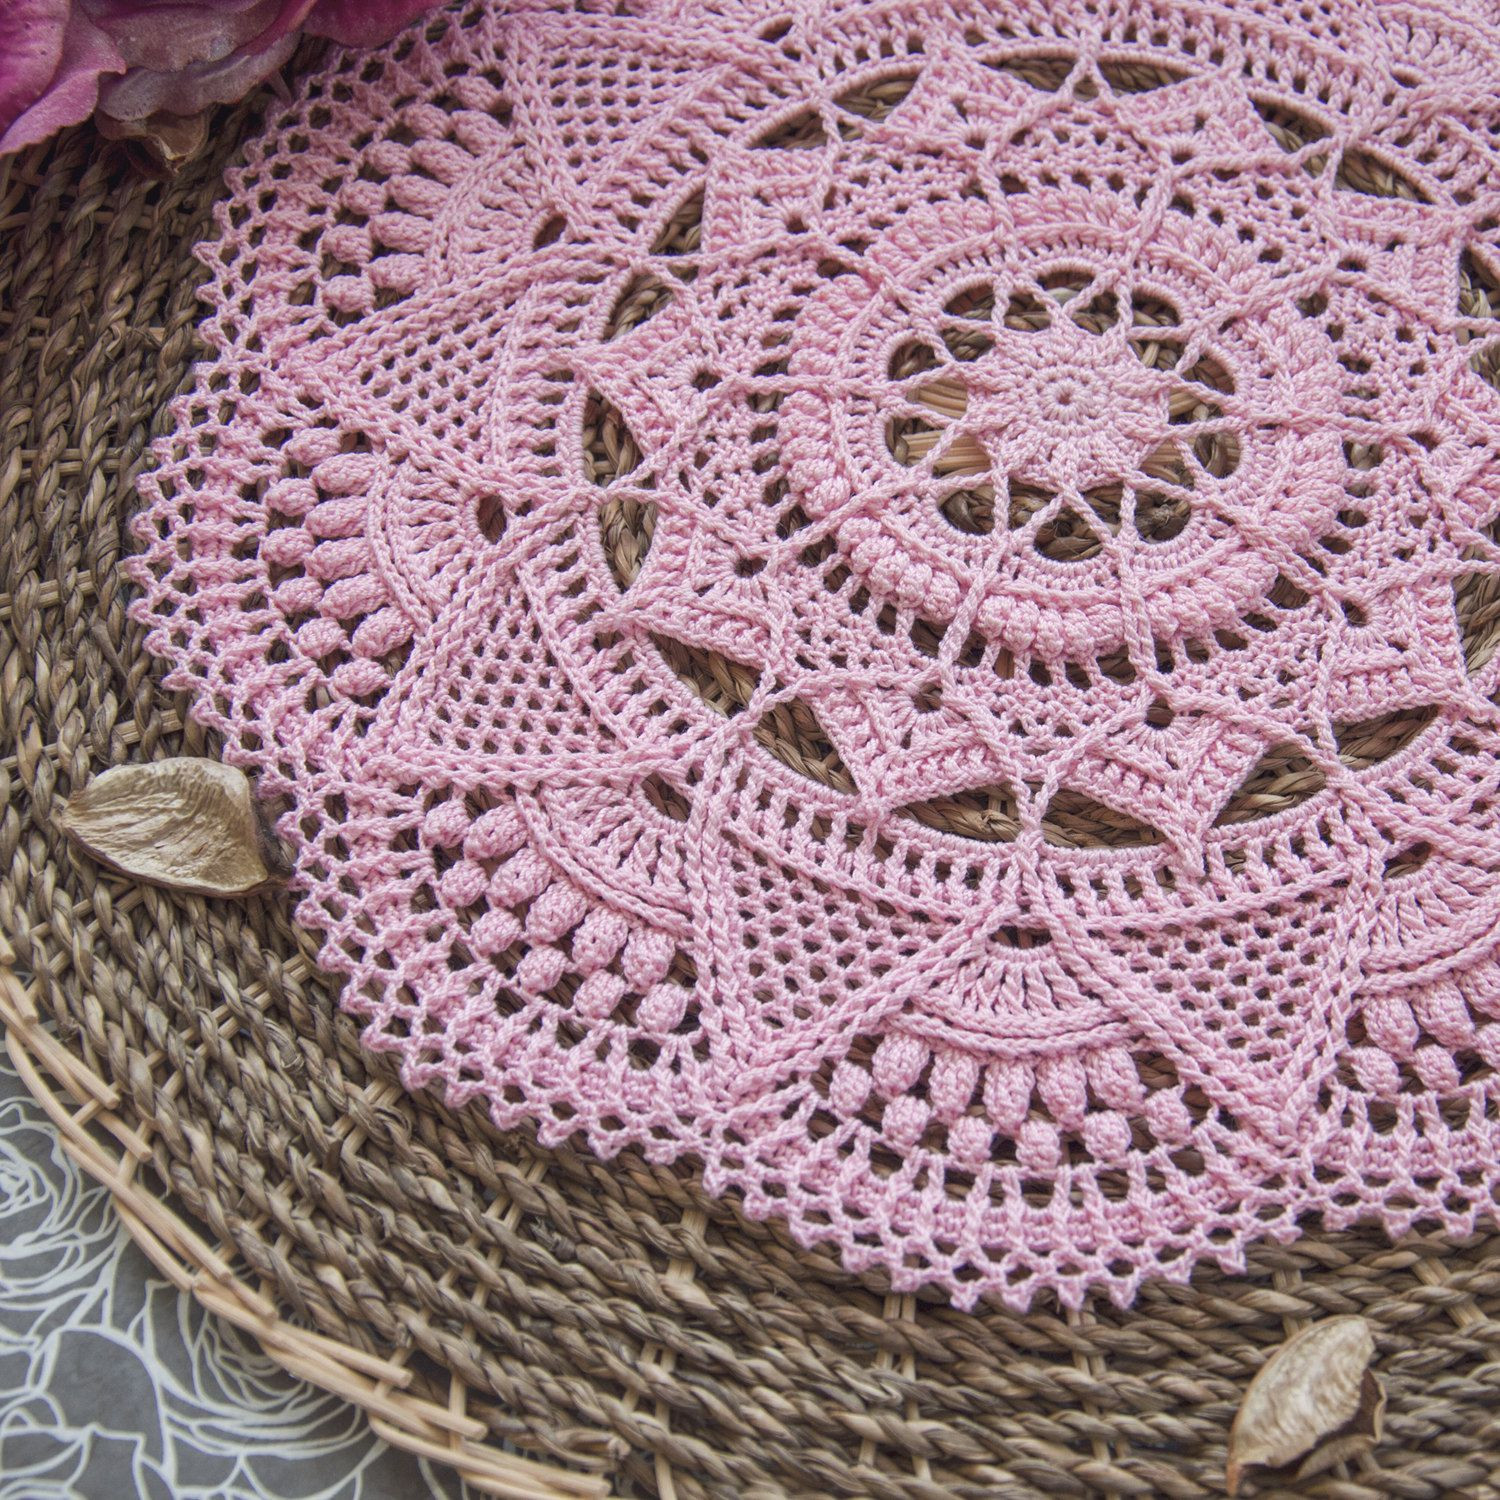 Free Crochet Doily Patterns Luxury Textured Crochet Doily with Intricate Details This Of Charming 46 Pics Free Crochet Doily Patterns